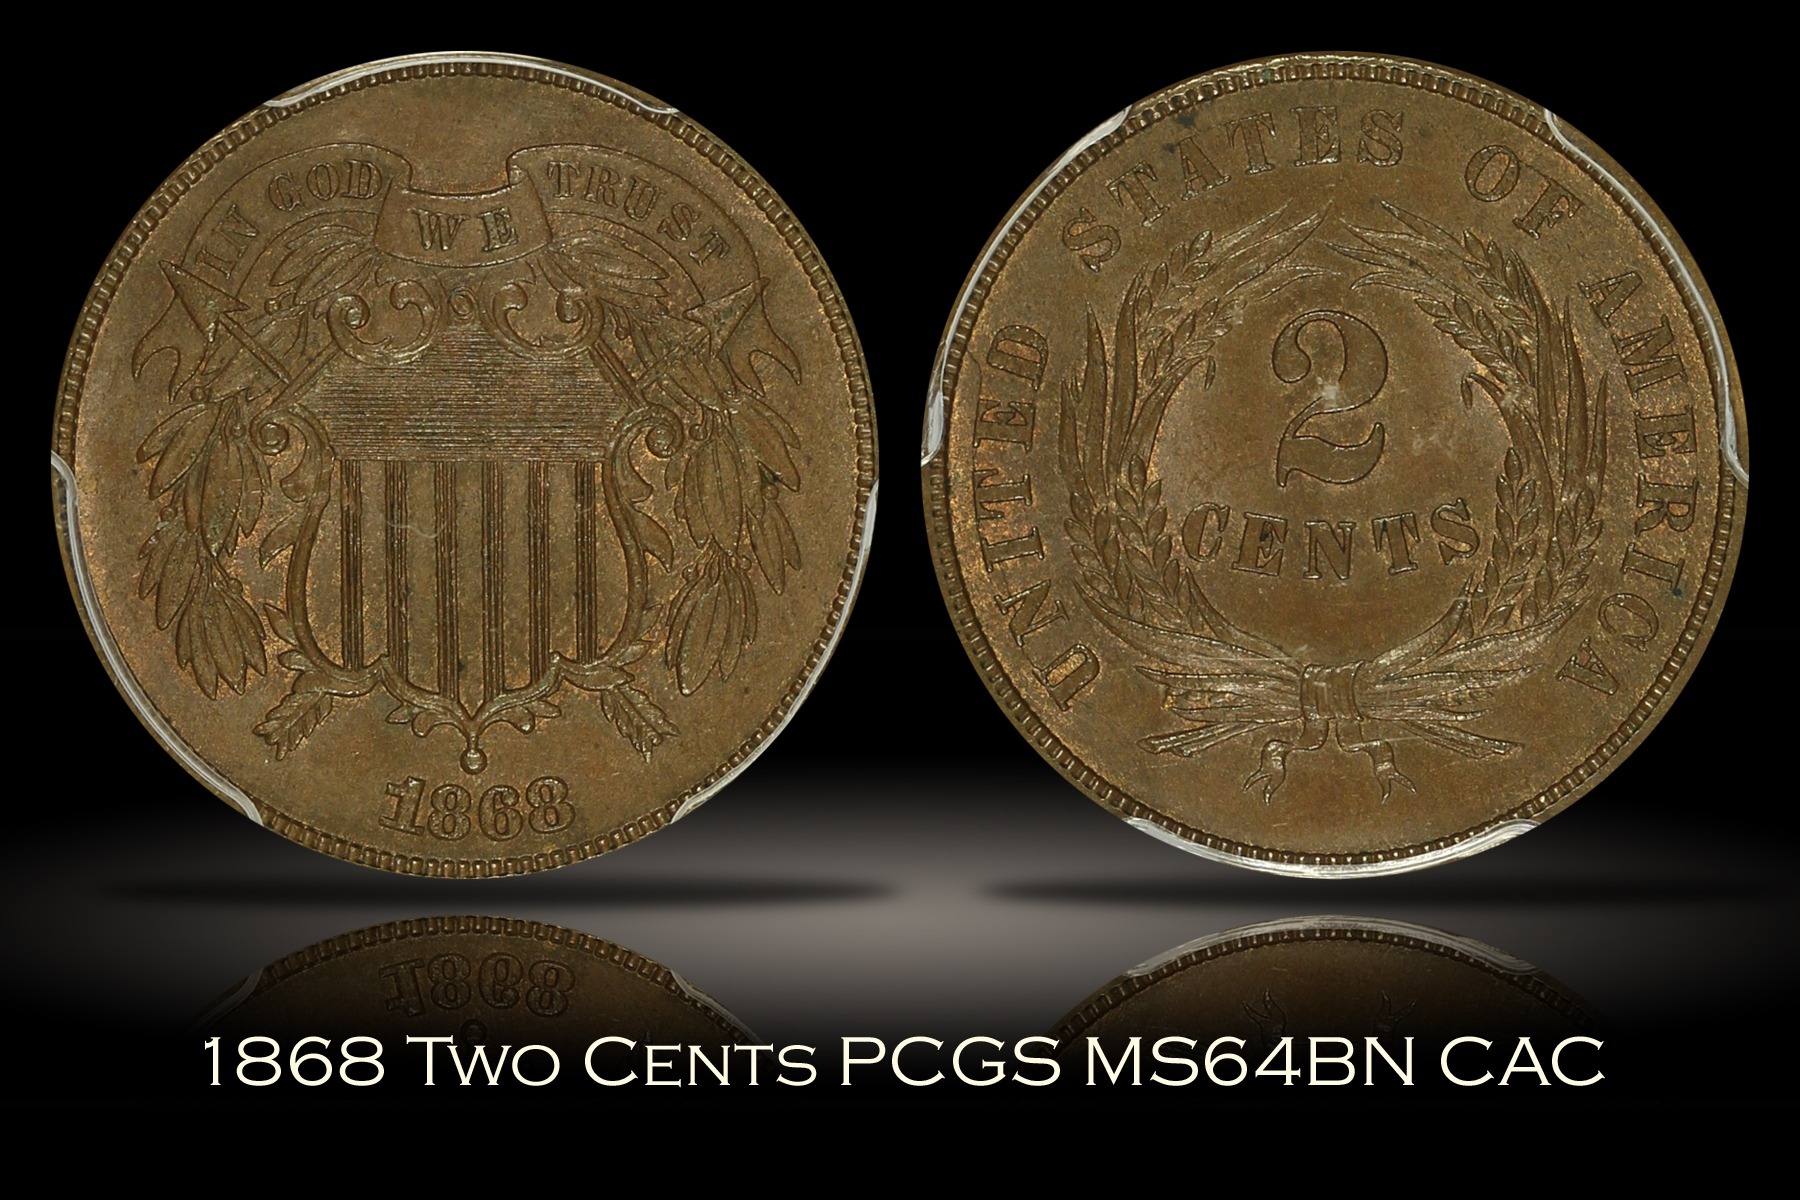 1868 Two Cents PCGS MS64BN CAC